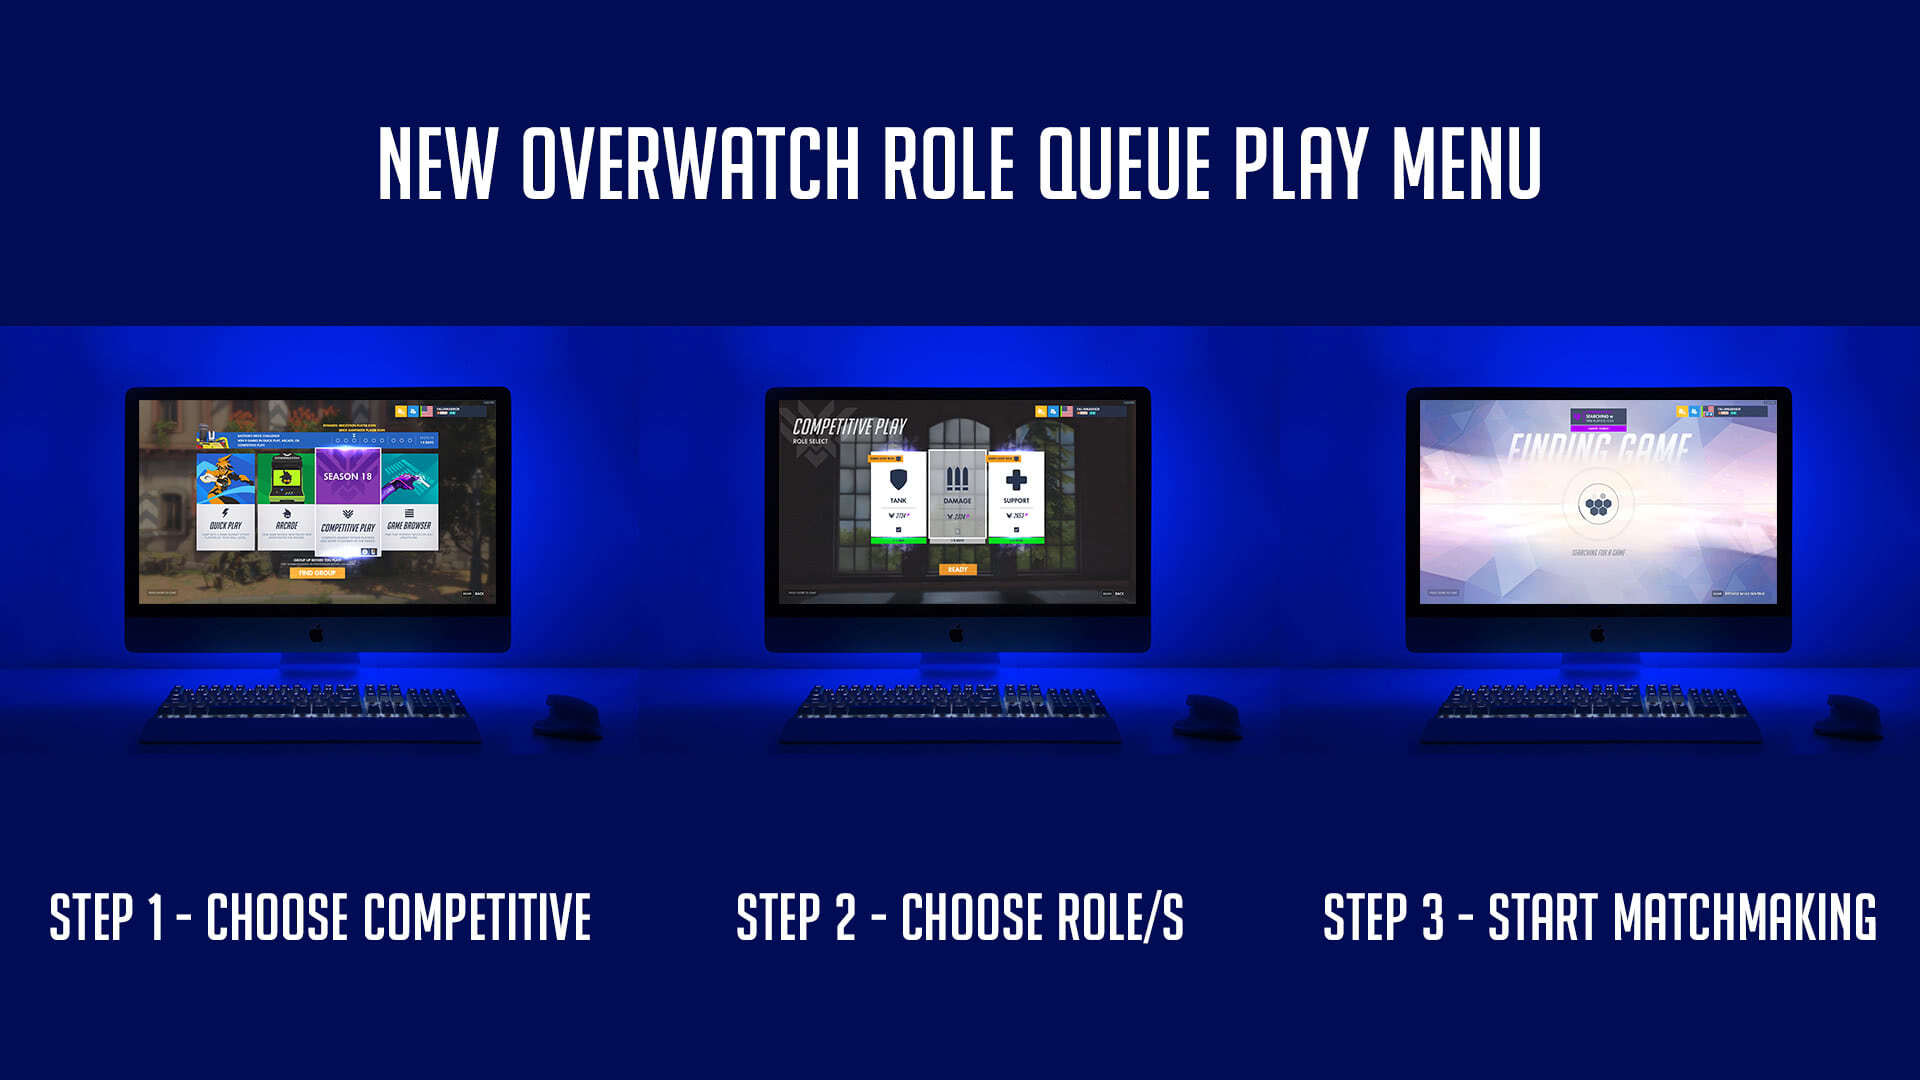 New Overwatch Role Queue Play Menu UI Steps To Start Multiplayer Matchmaking